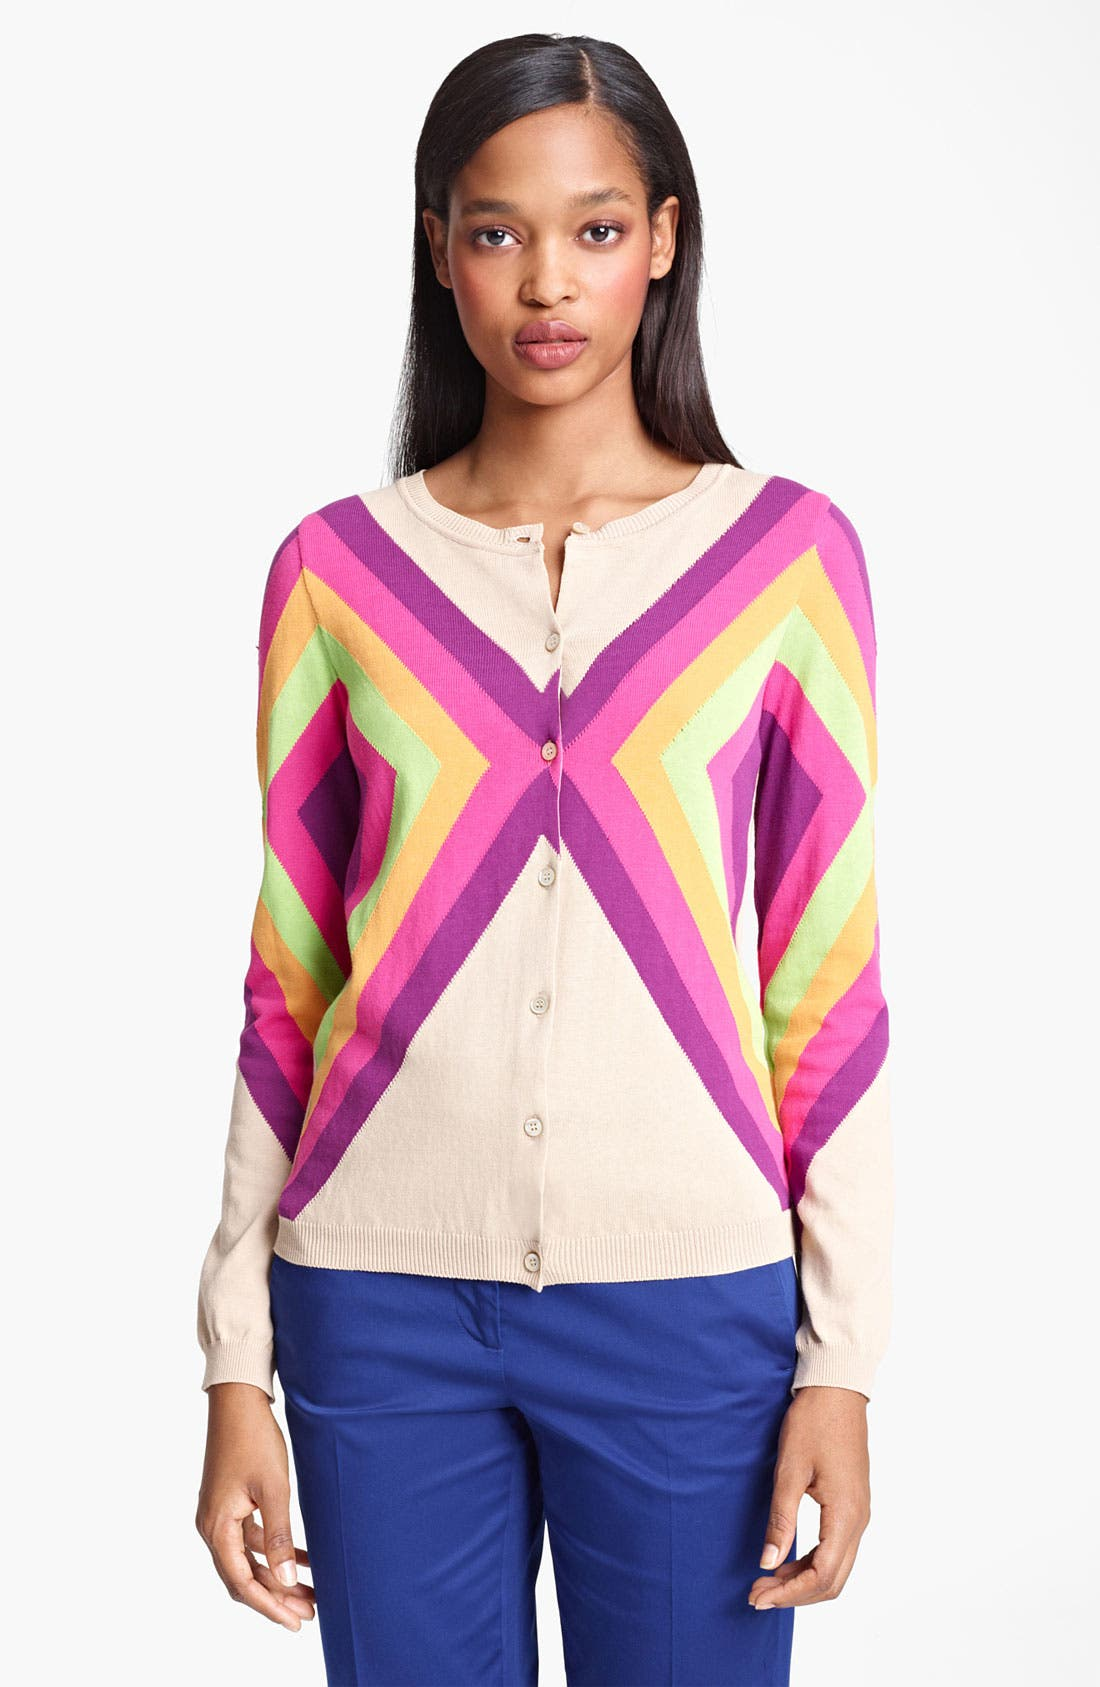 Main Image - Moschino Cheap & Chic Geometric Print Cardigan